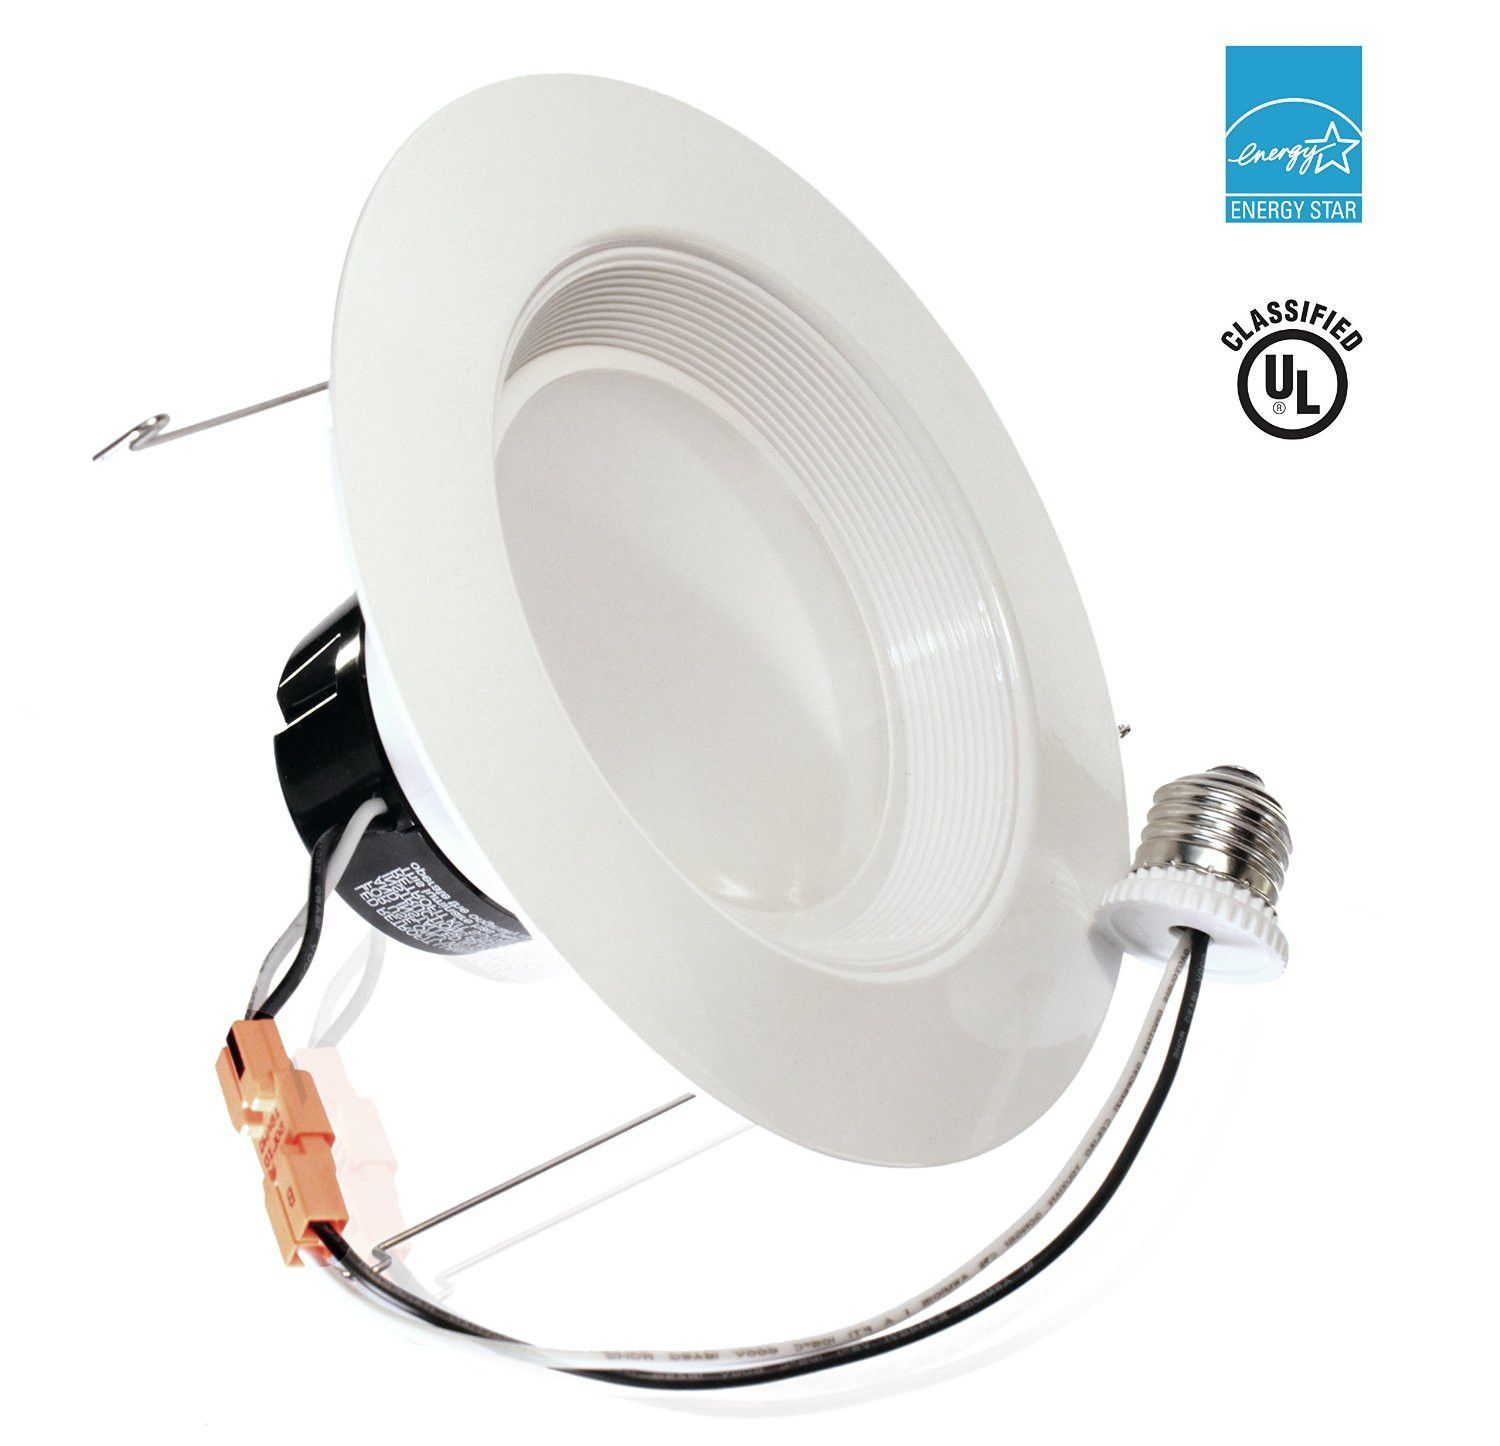 11watt 5 6 inch energy star ul listed dimmable led downlight